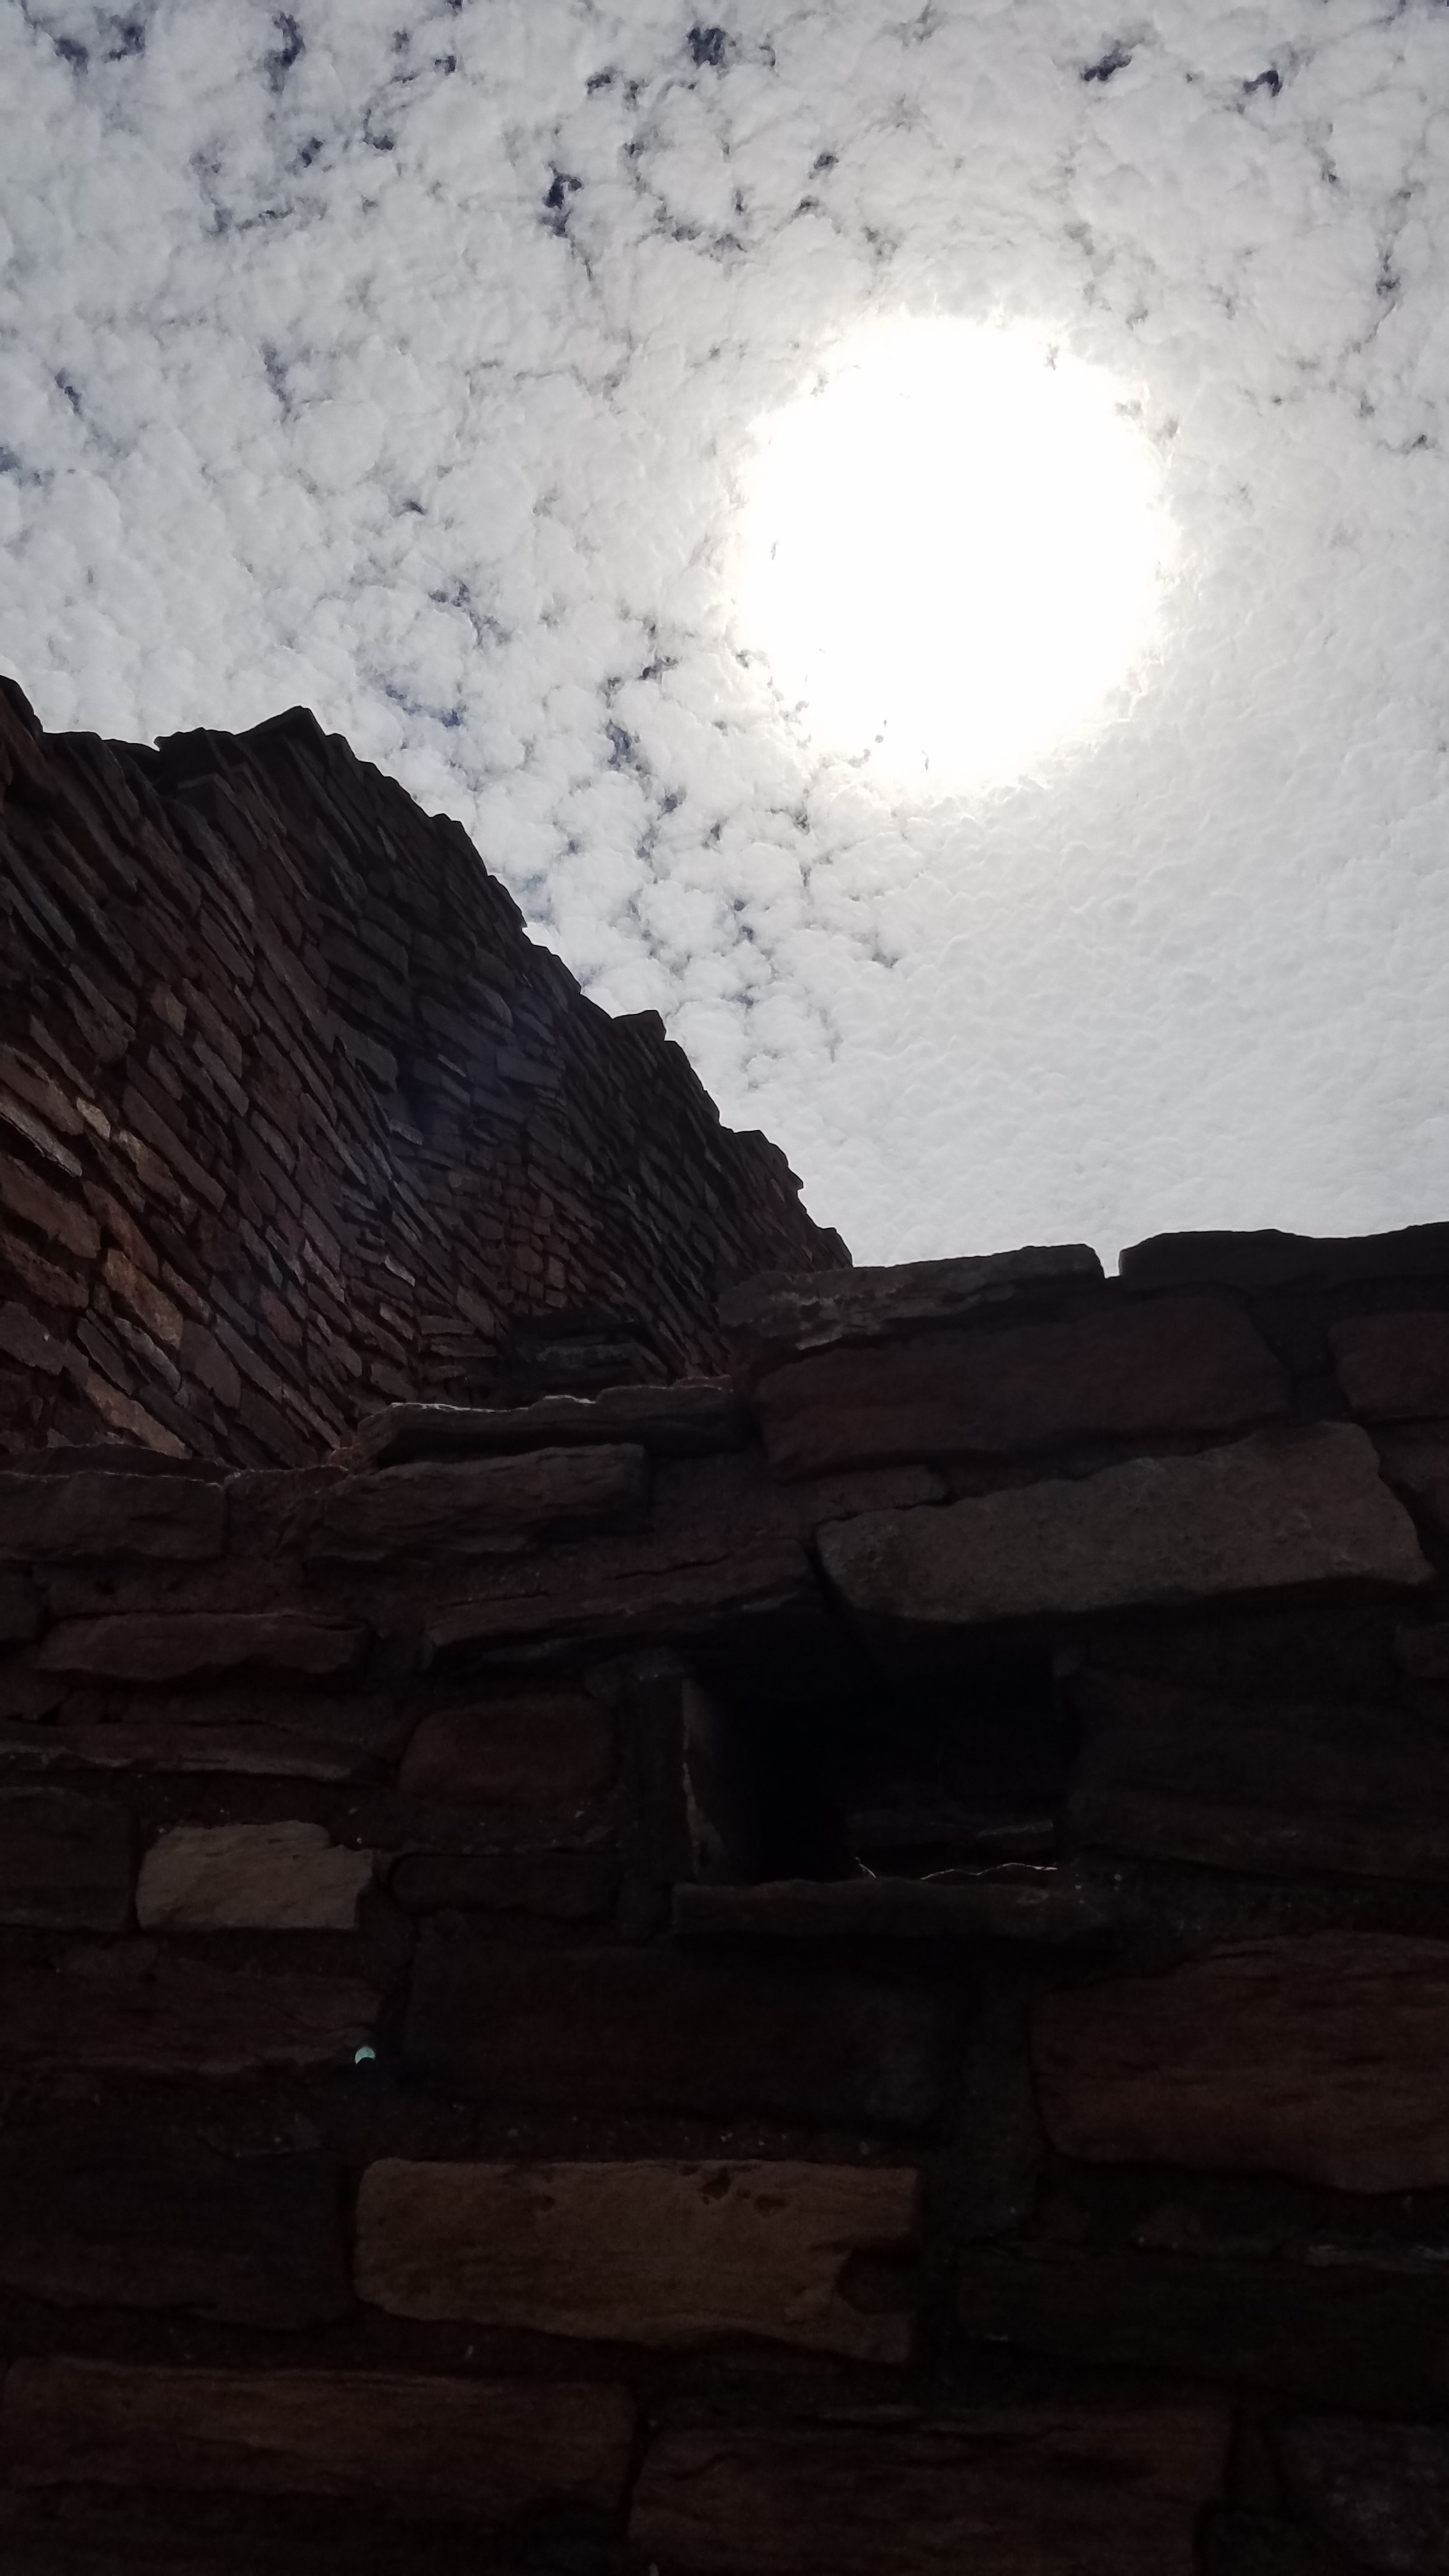 Eclipsing Sun Obscured by Clouds Beneath Wupatki Ruin